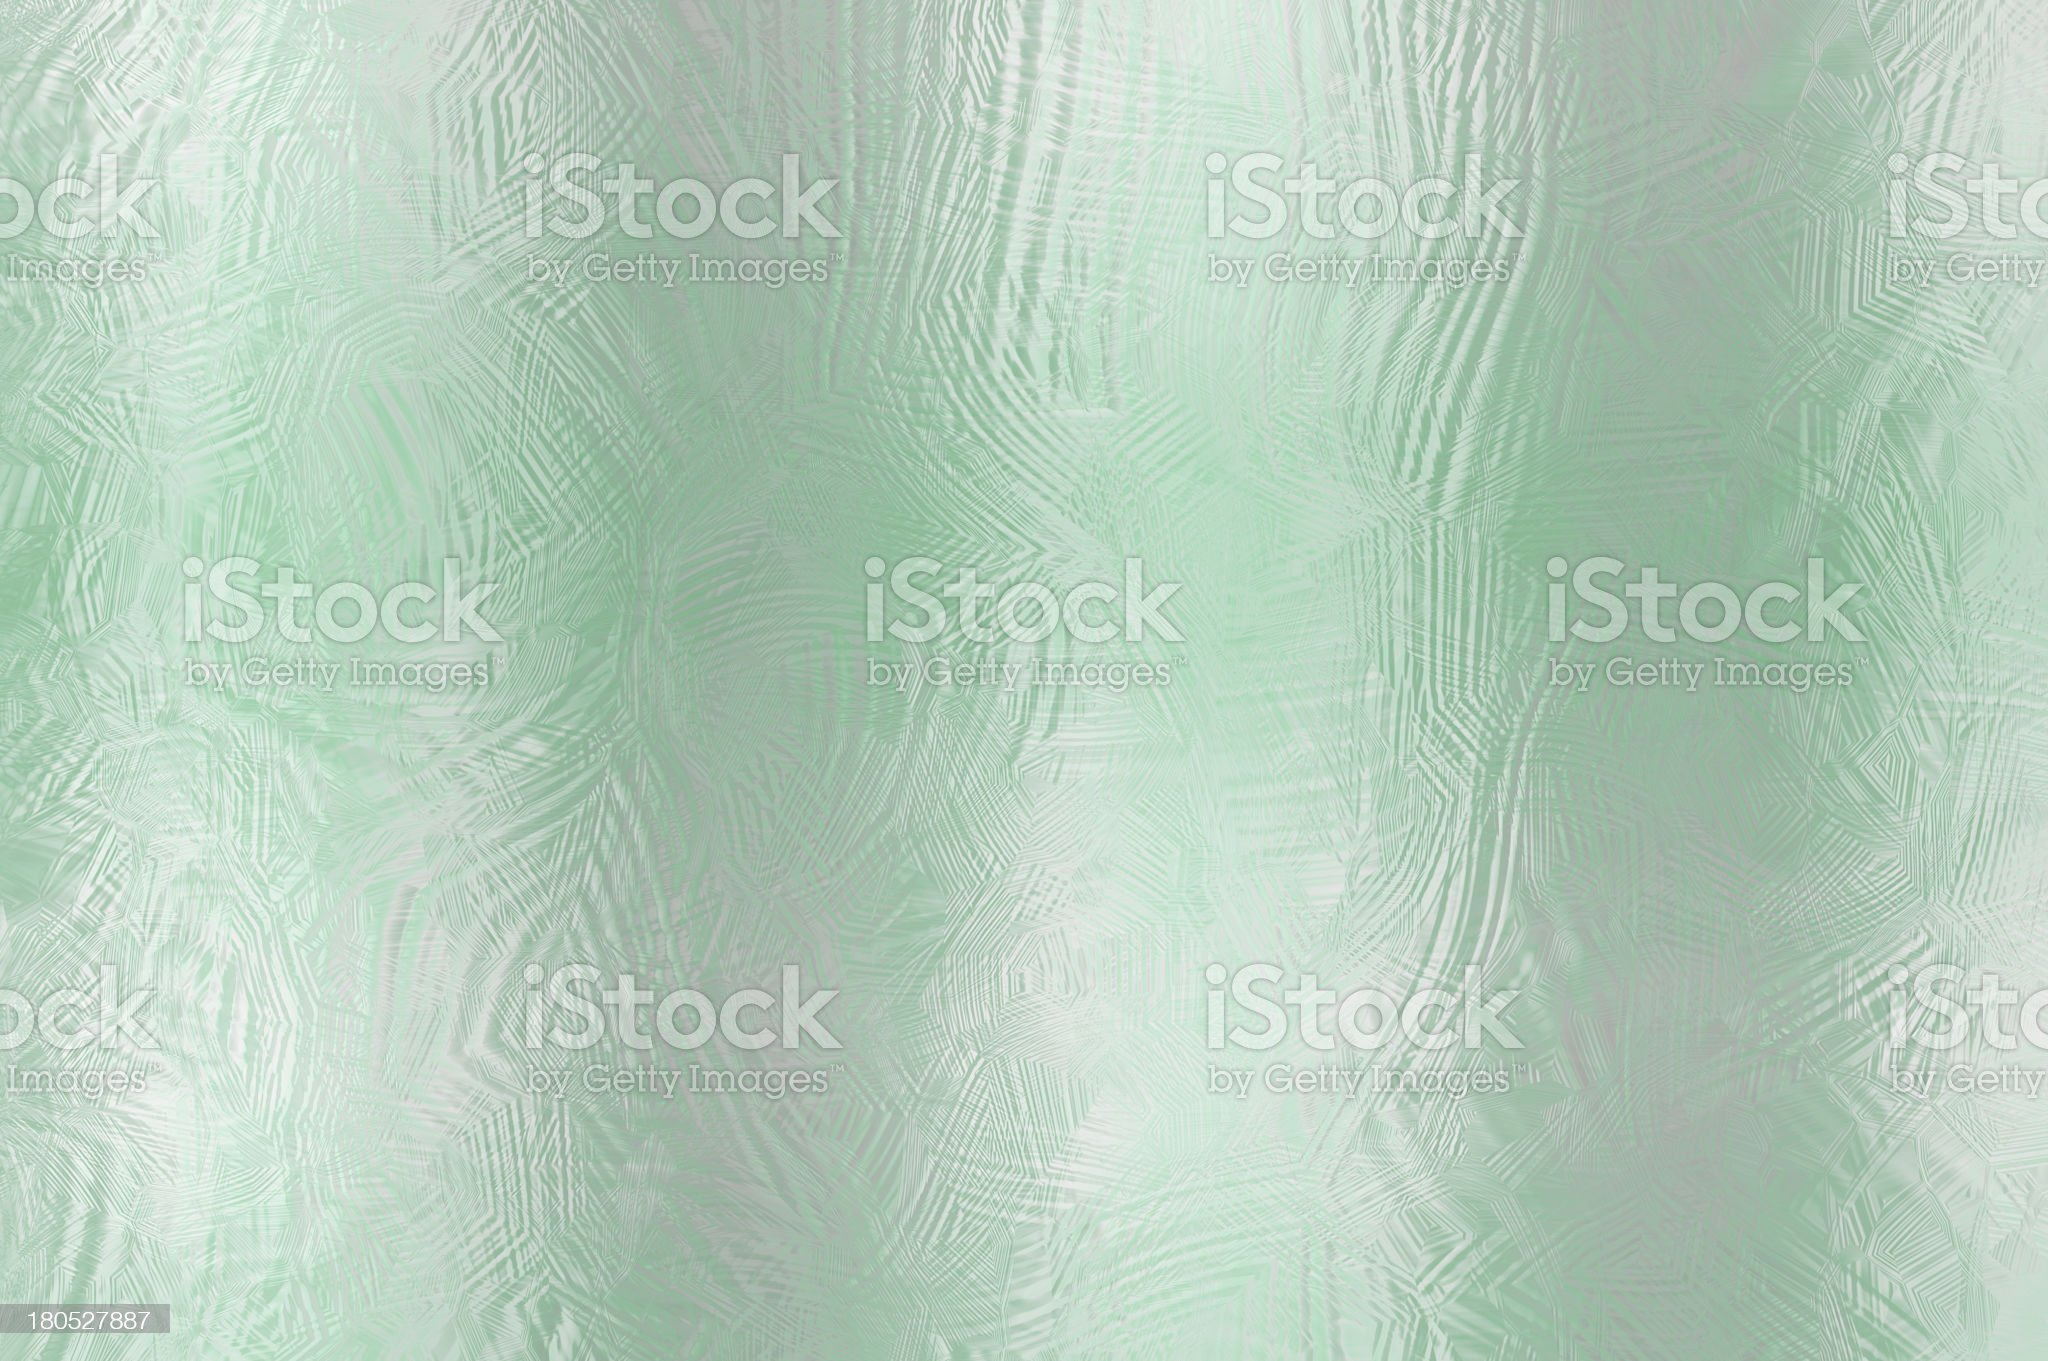 Frosted glass background in delicate shades of green. royalty-free stock photo